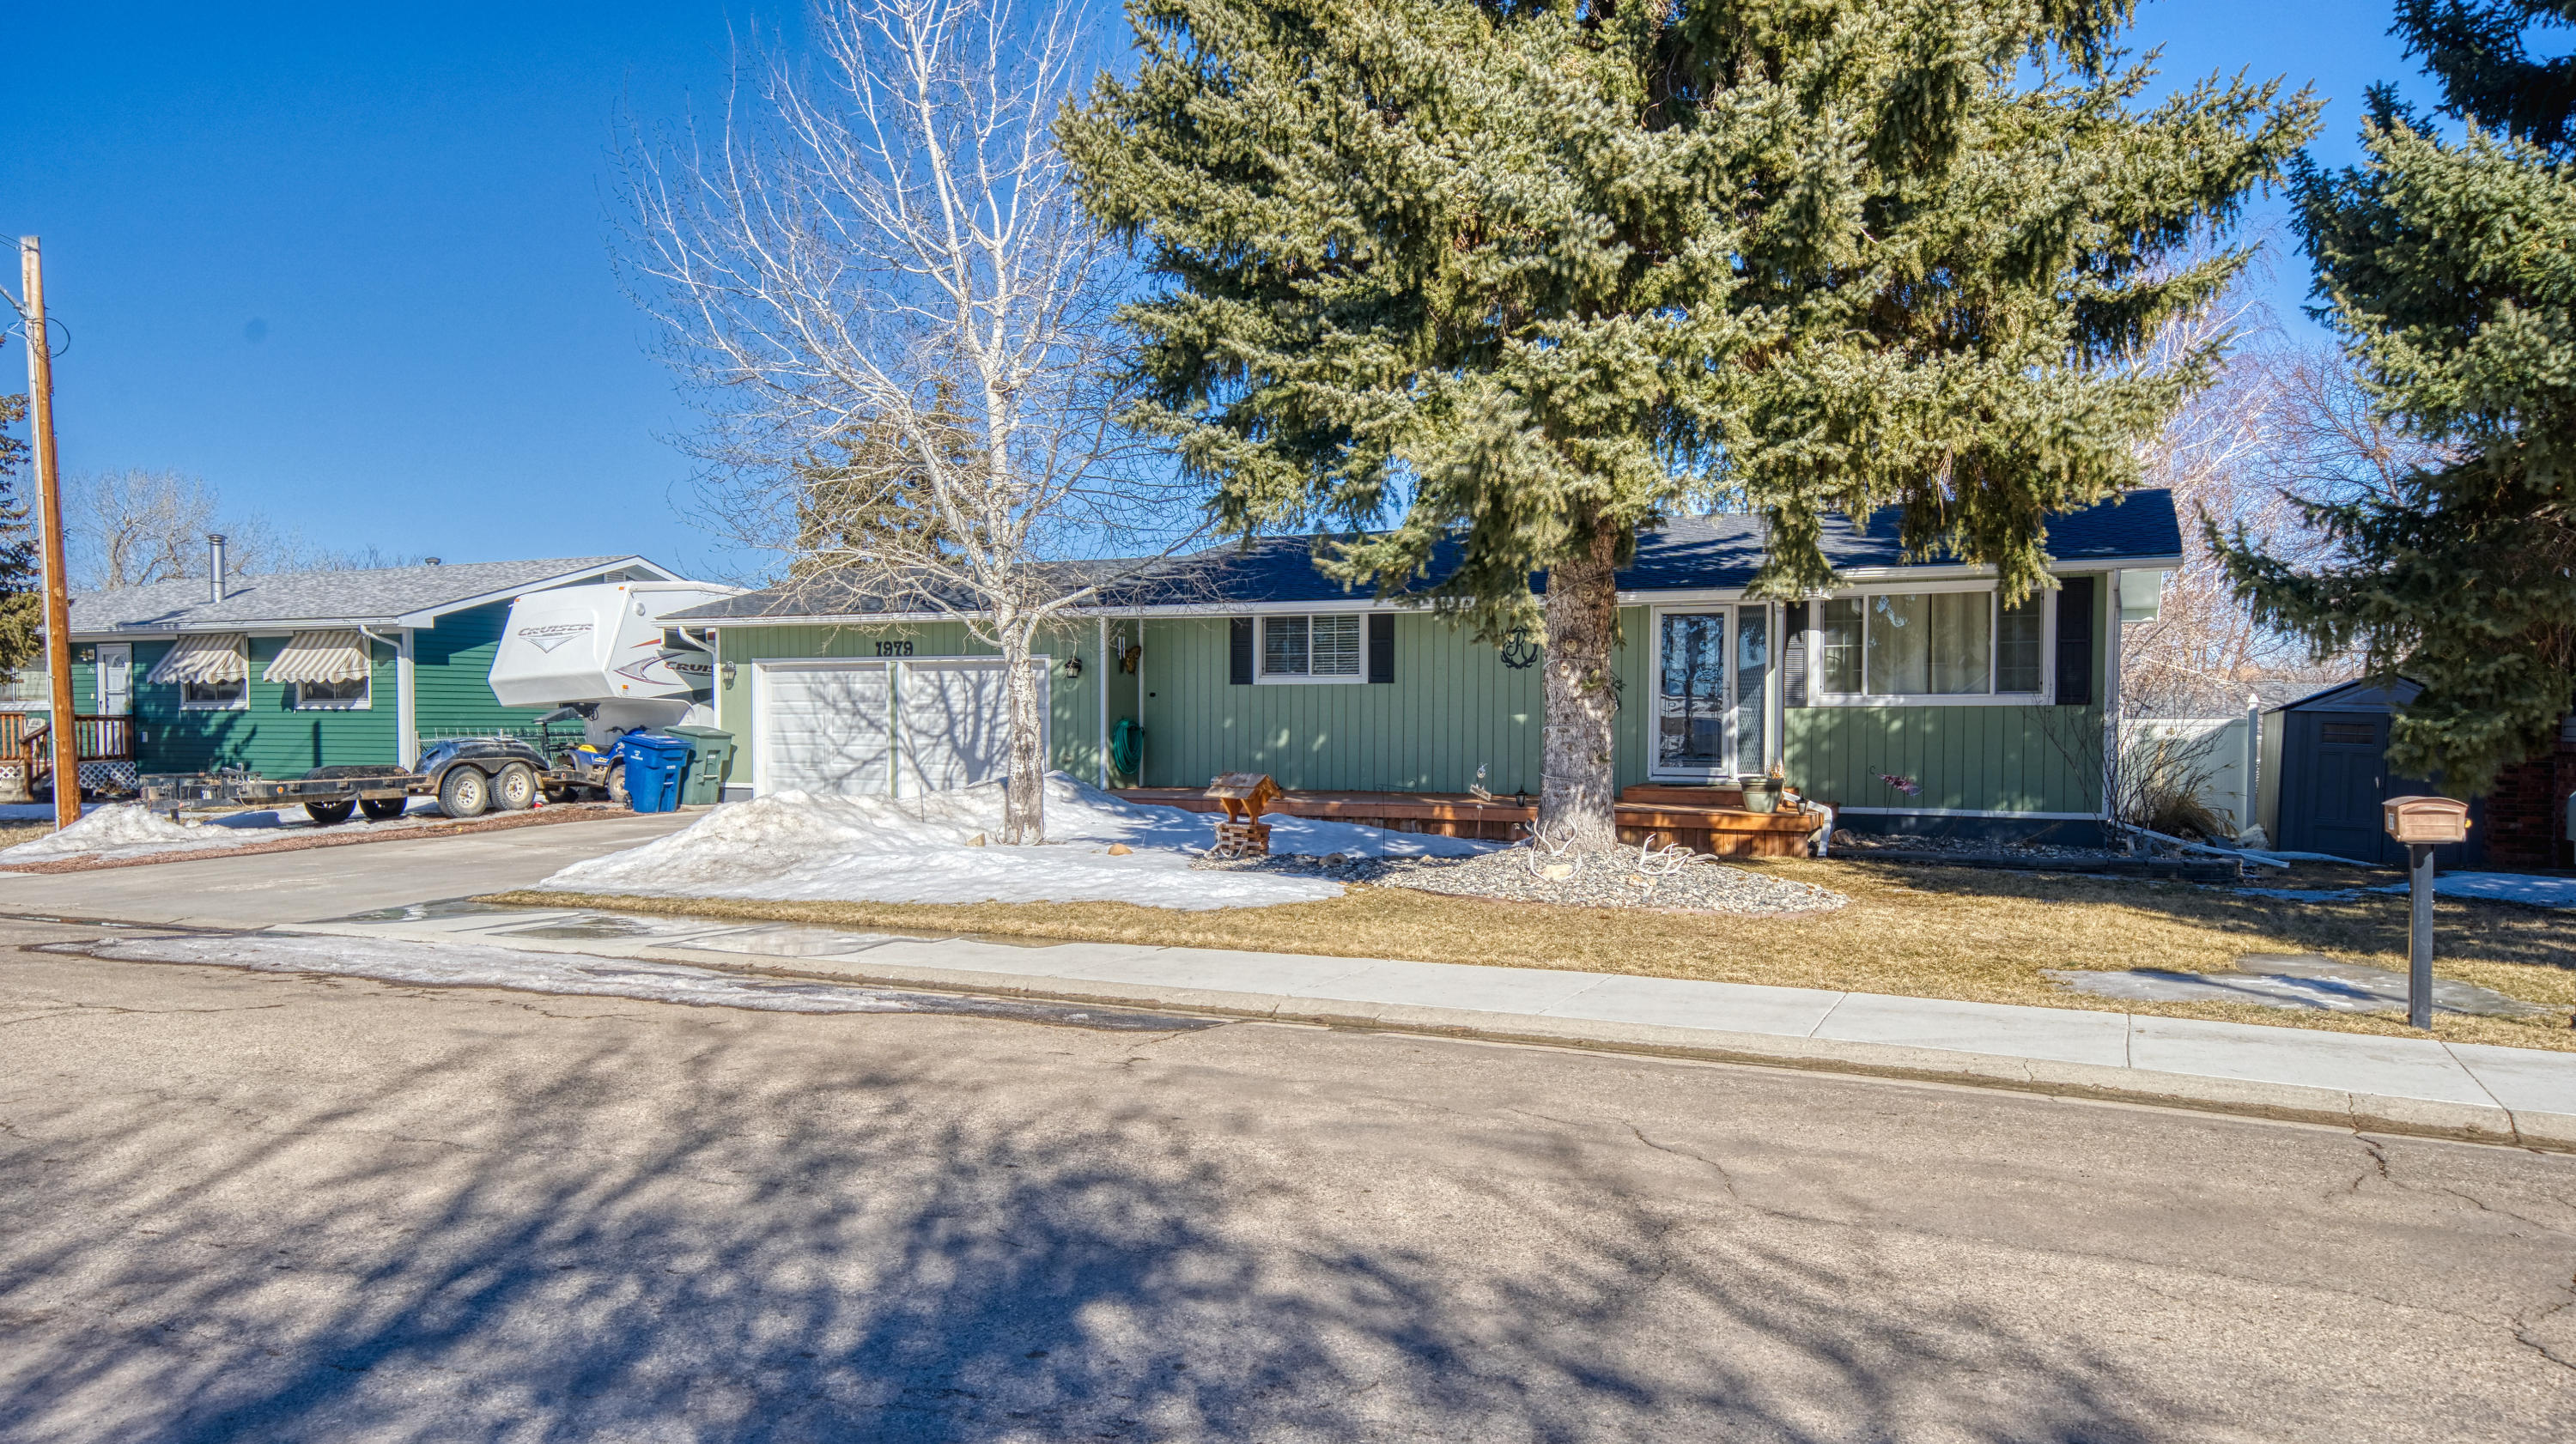 1979 Papago Drive, Sheridan, Wyoming 82801, 4 Bedrooms Bedrooms, ,2 BathroomsBathrooms,Residential,For Sale,Papago,19-227